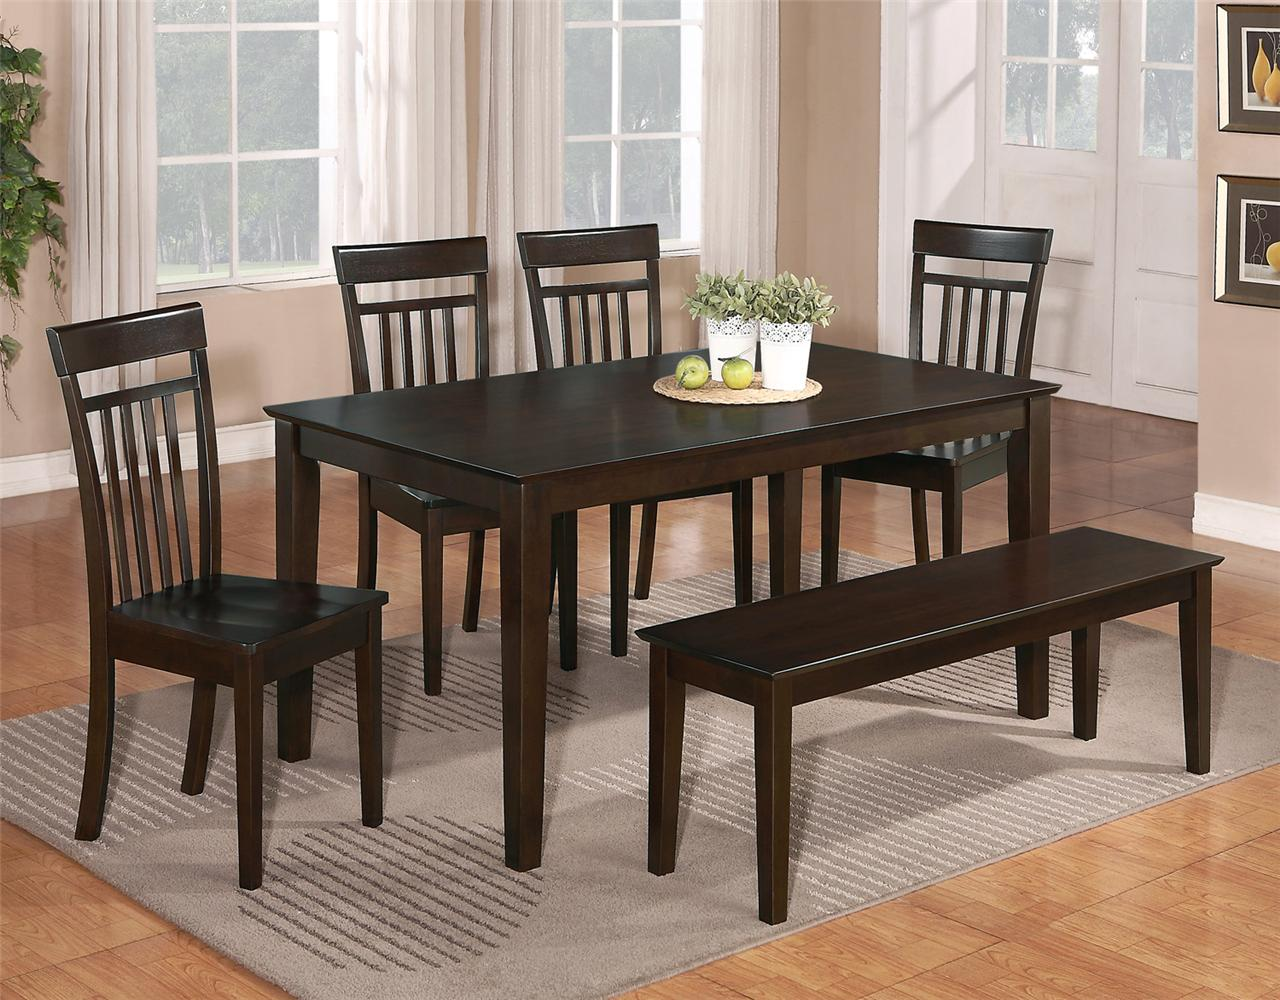 6 pc dinette kitchen dining room set table w 4 wood chair and 1 bench cappuccino ebay - Pc dining room set ...